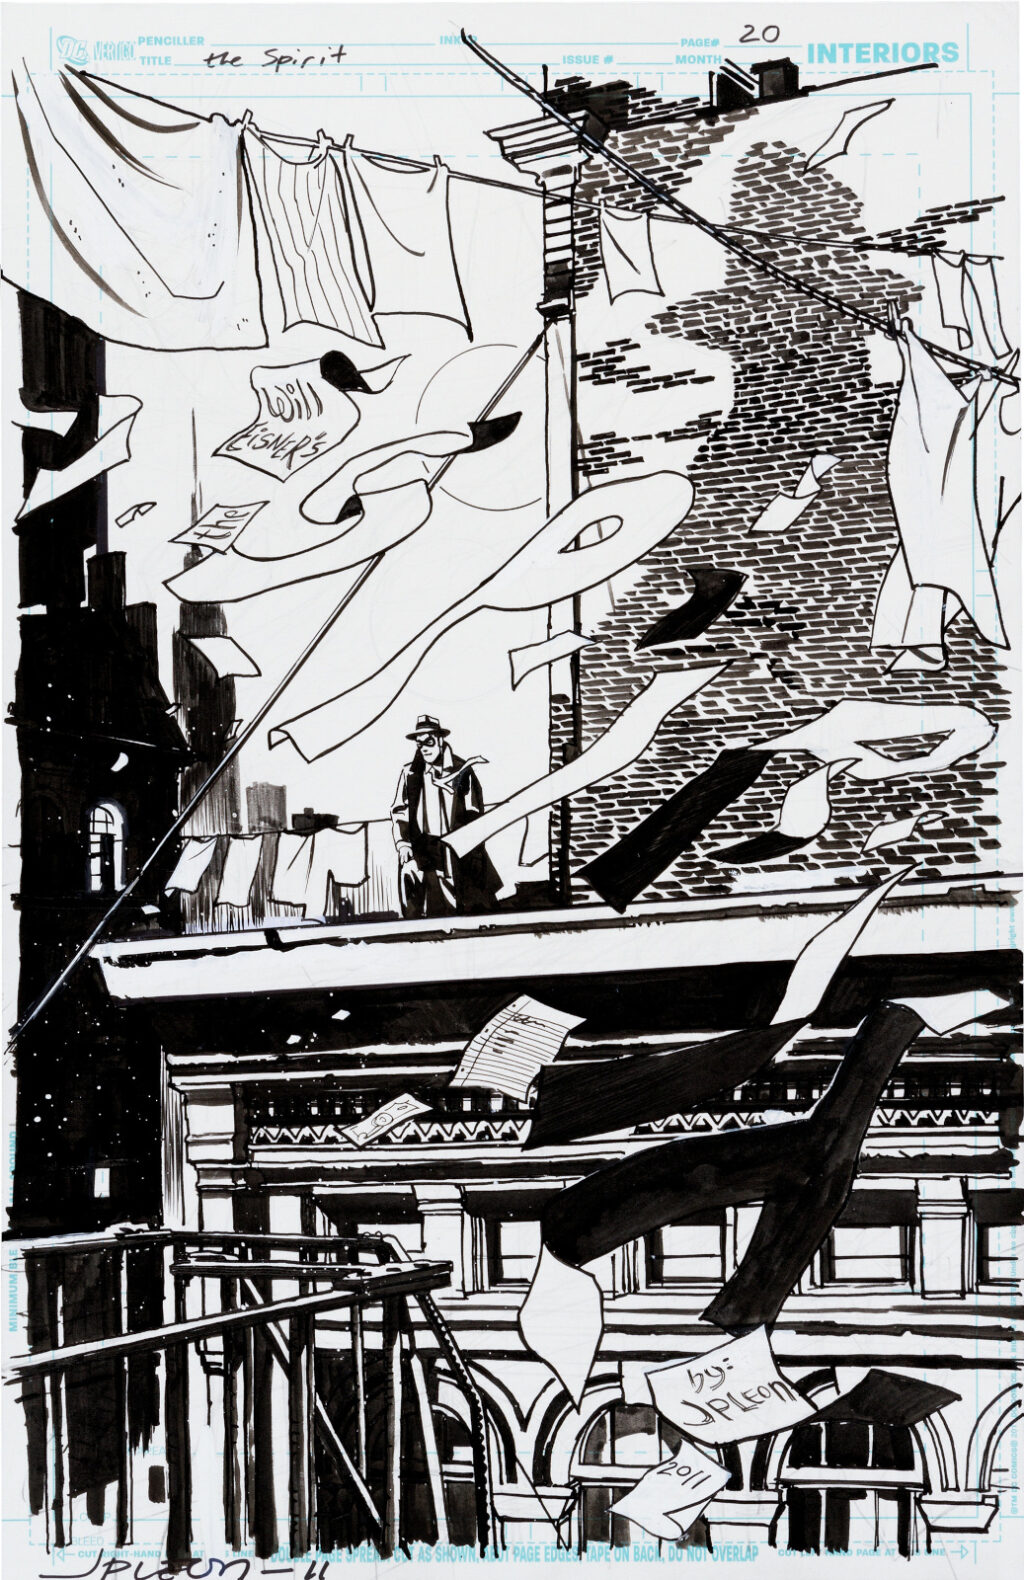 The Spirit issue 16 page 20 by John Paul Leon